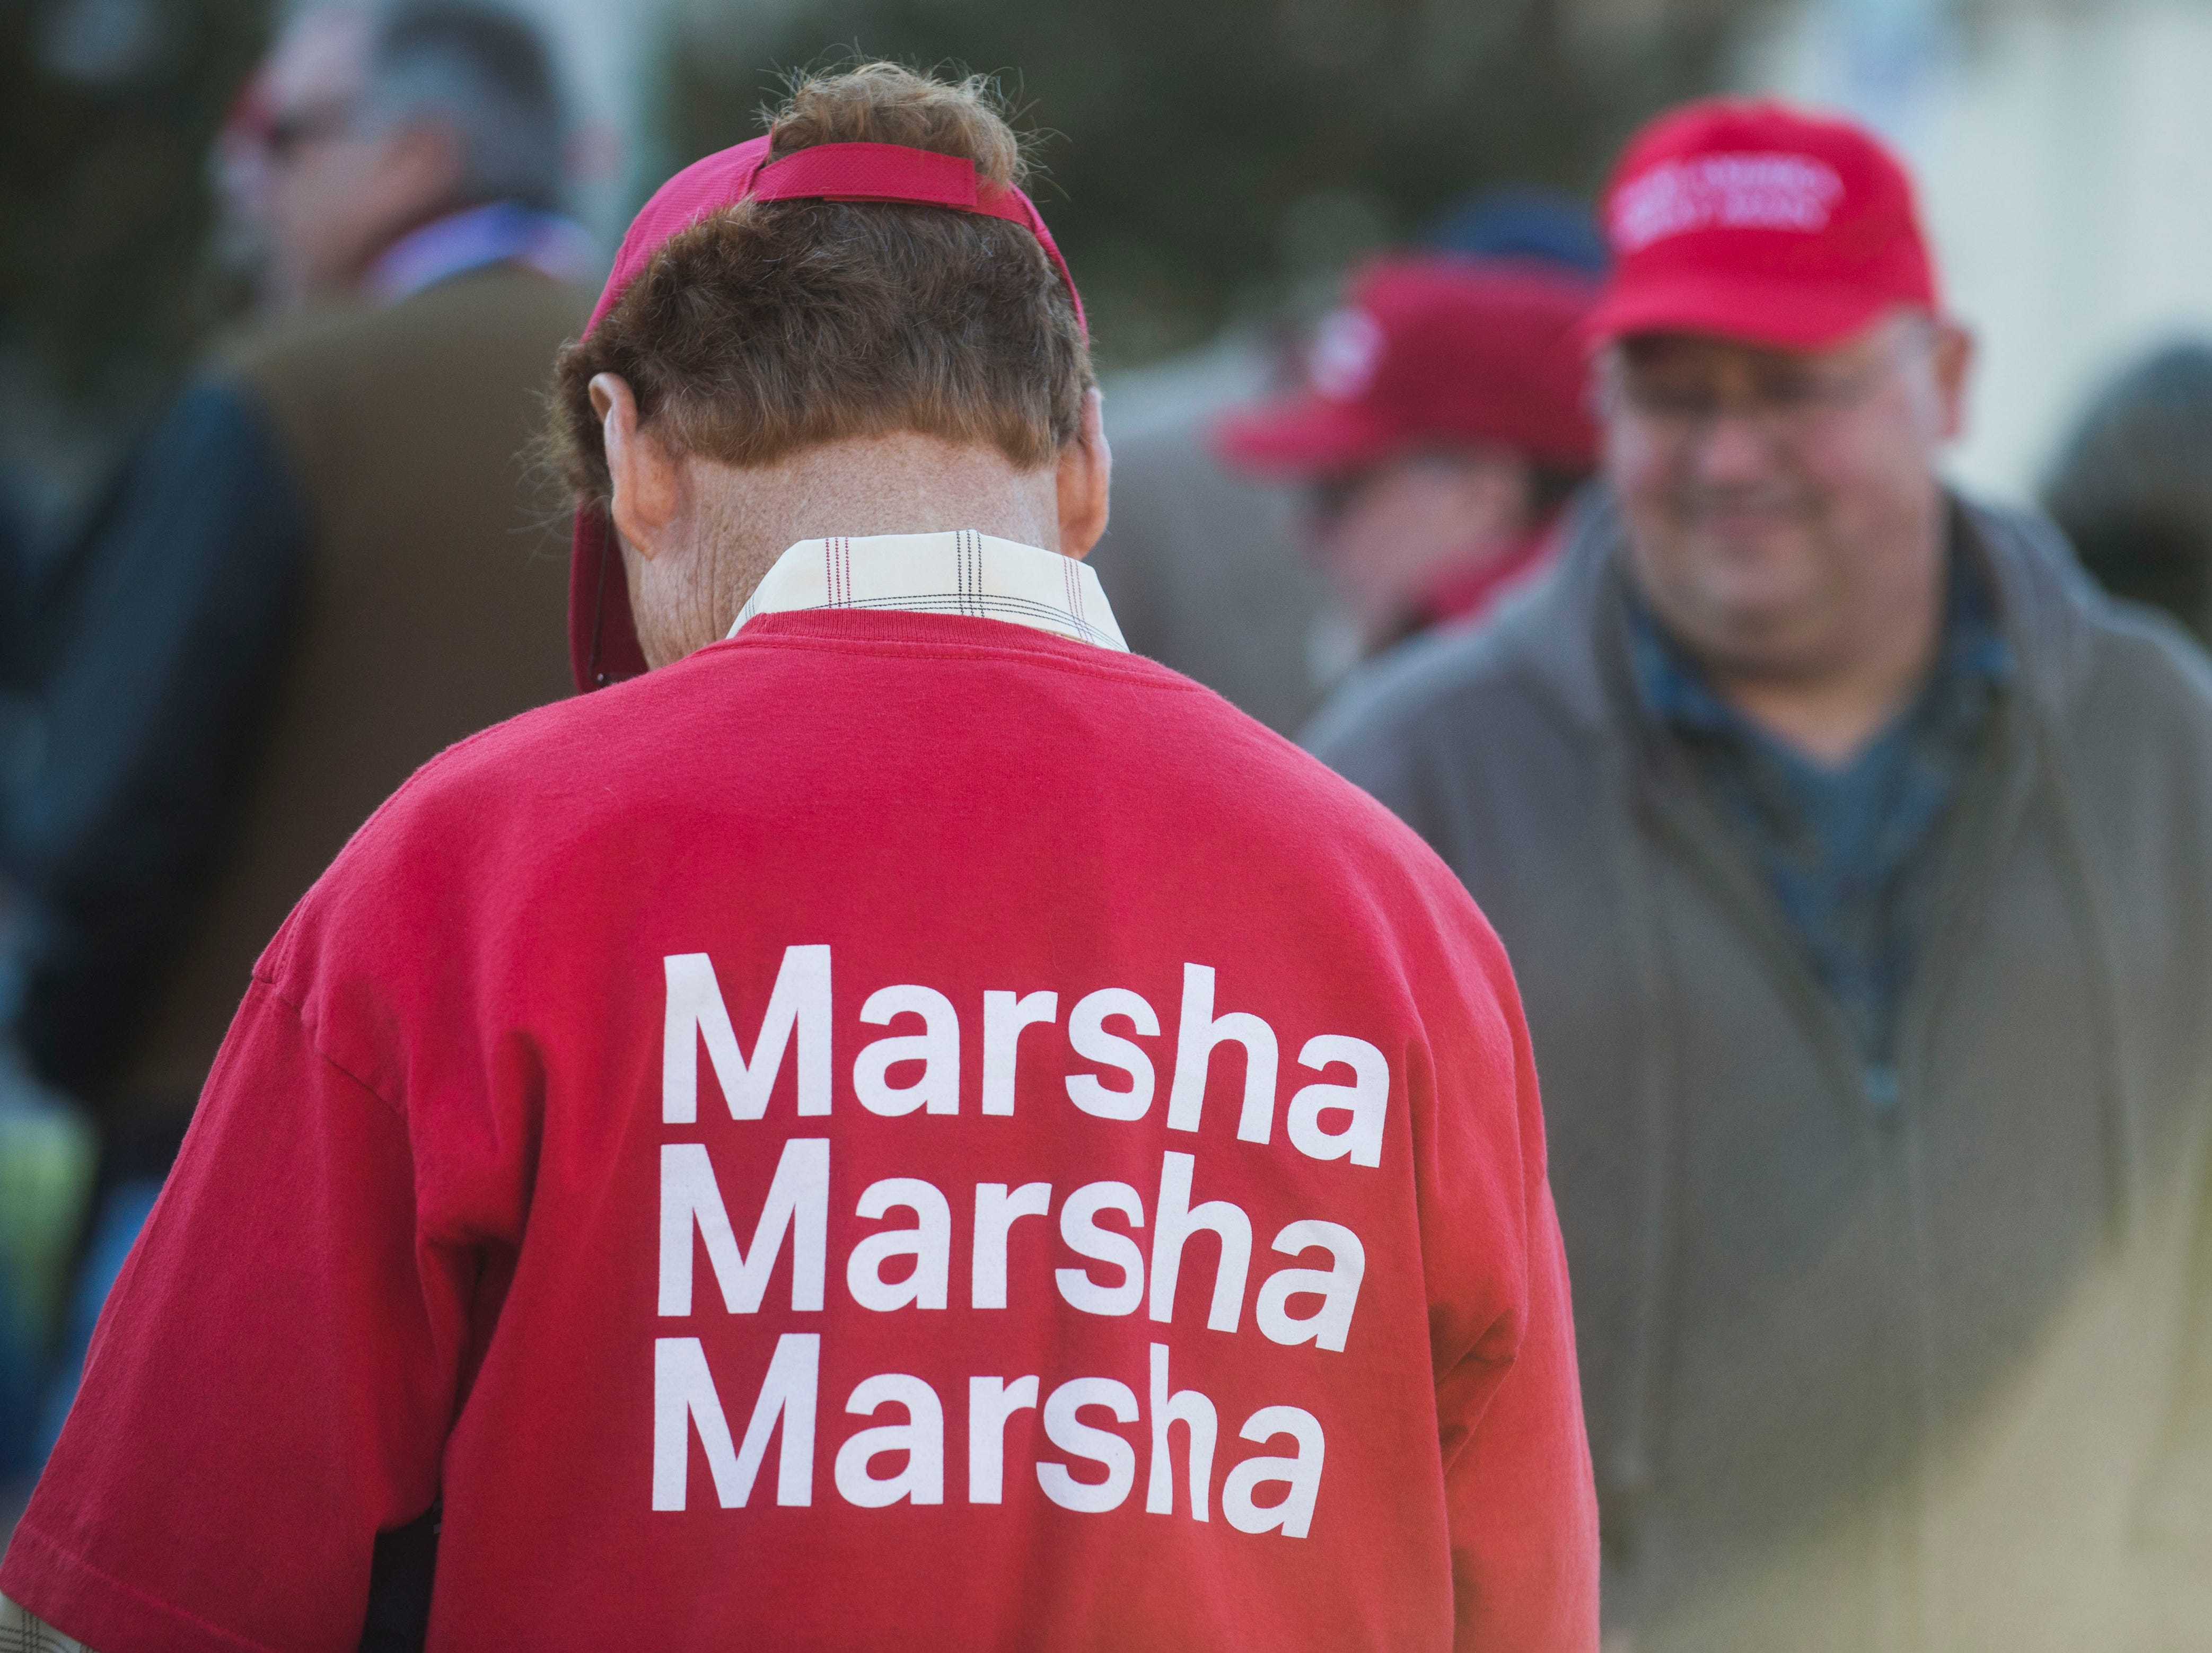 At left Terry Whitt of Ardmore, Tenn. wears a Marsha Blackburn shirt before a Donald Trump rally in support of U.S. Rep. Marsha Blackburn for the U.S. Senate at McKenzie Arena in Chattanooga, Sunday, Nov. 4, 2018.